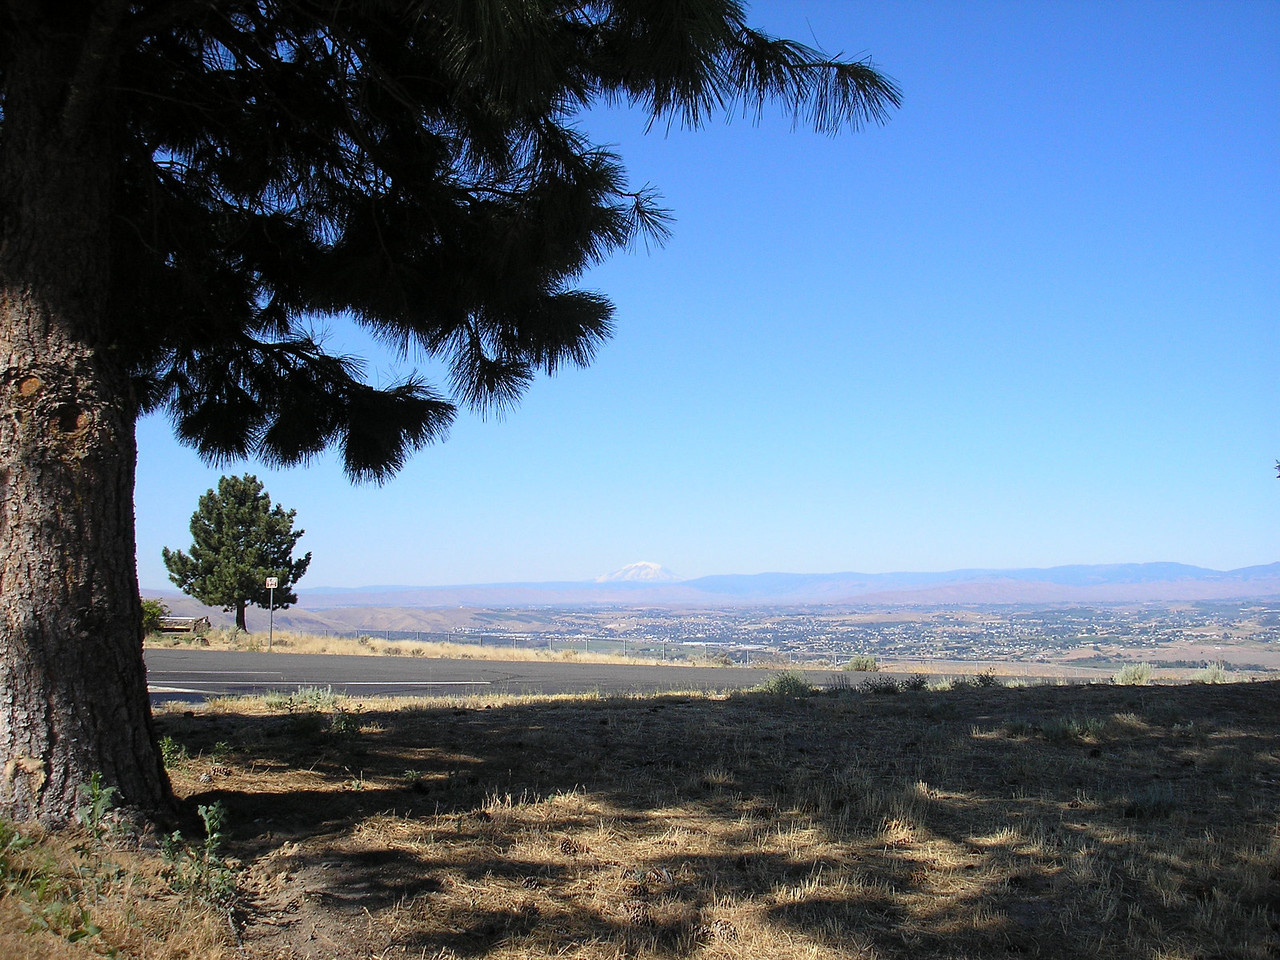 This is the Yakima vally with Mount Adams in the distance